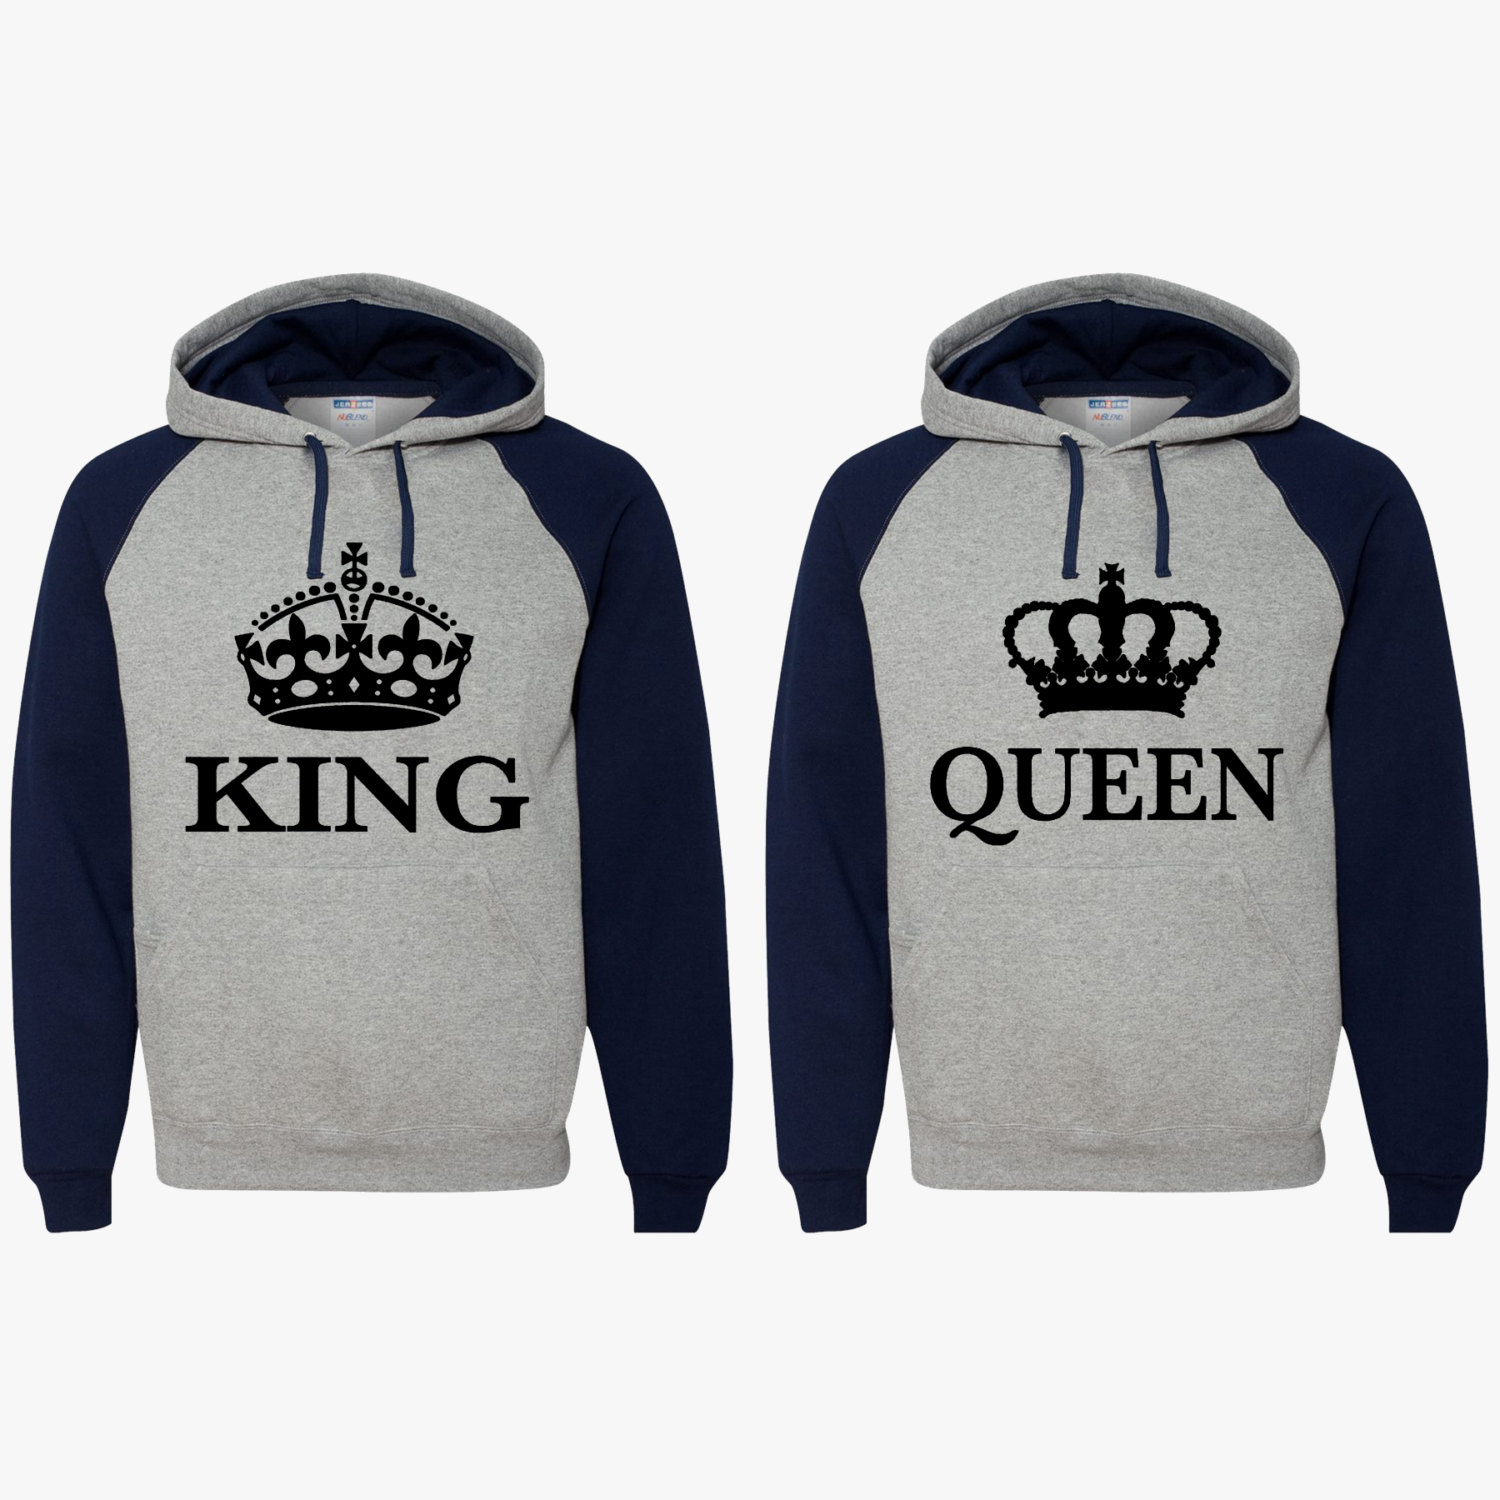 king queen hoodies couple matching hooded sweatshirts. Black Bedroom Furniture Sets. Home Design Ideas